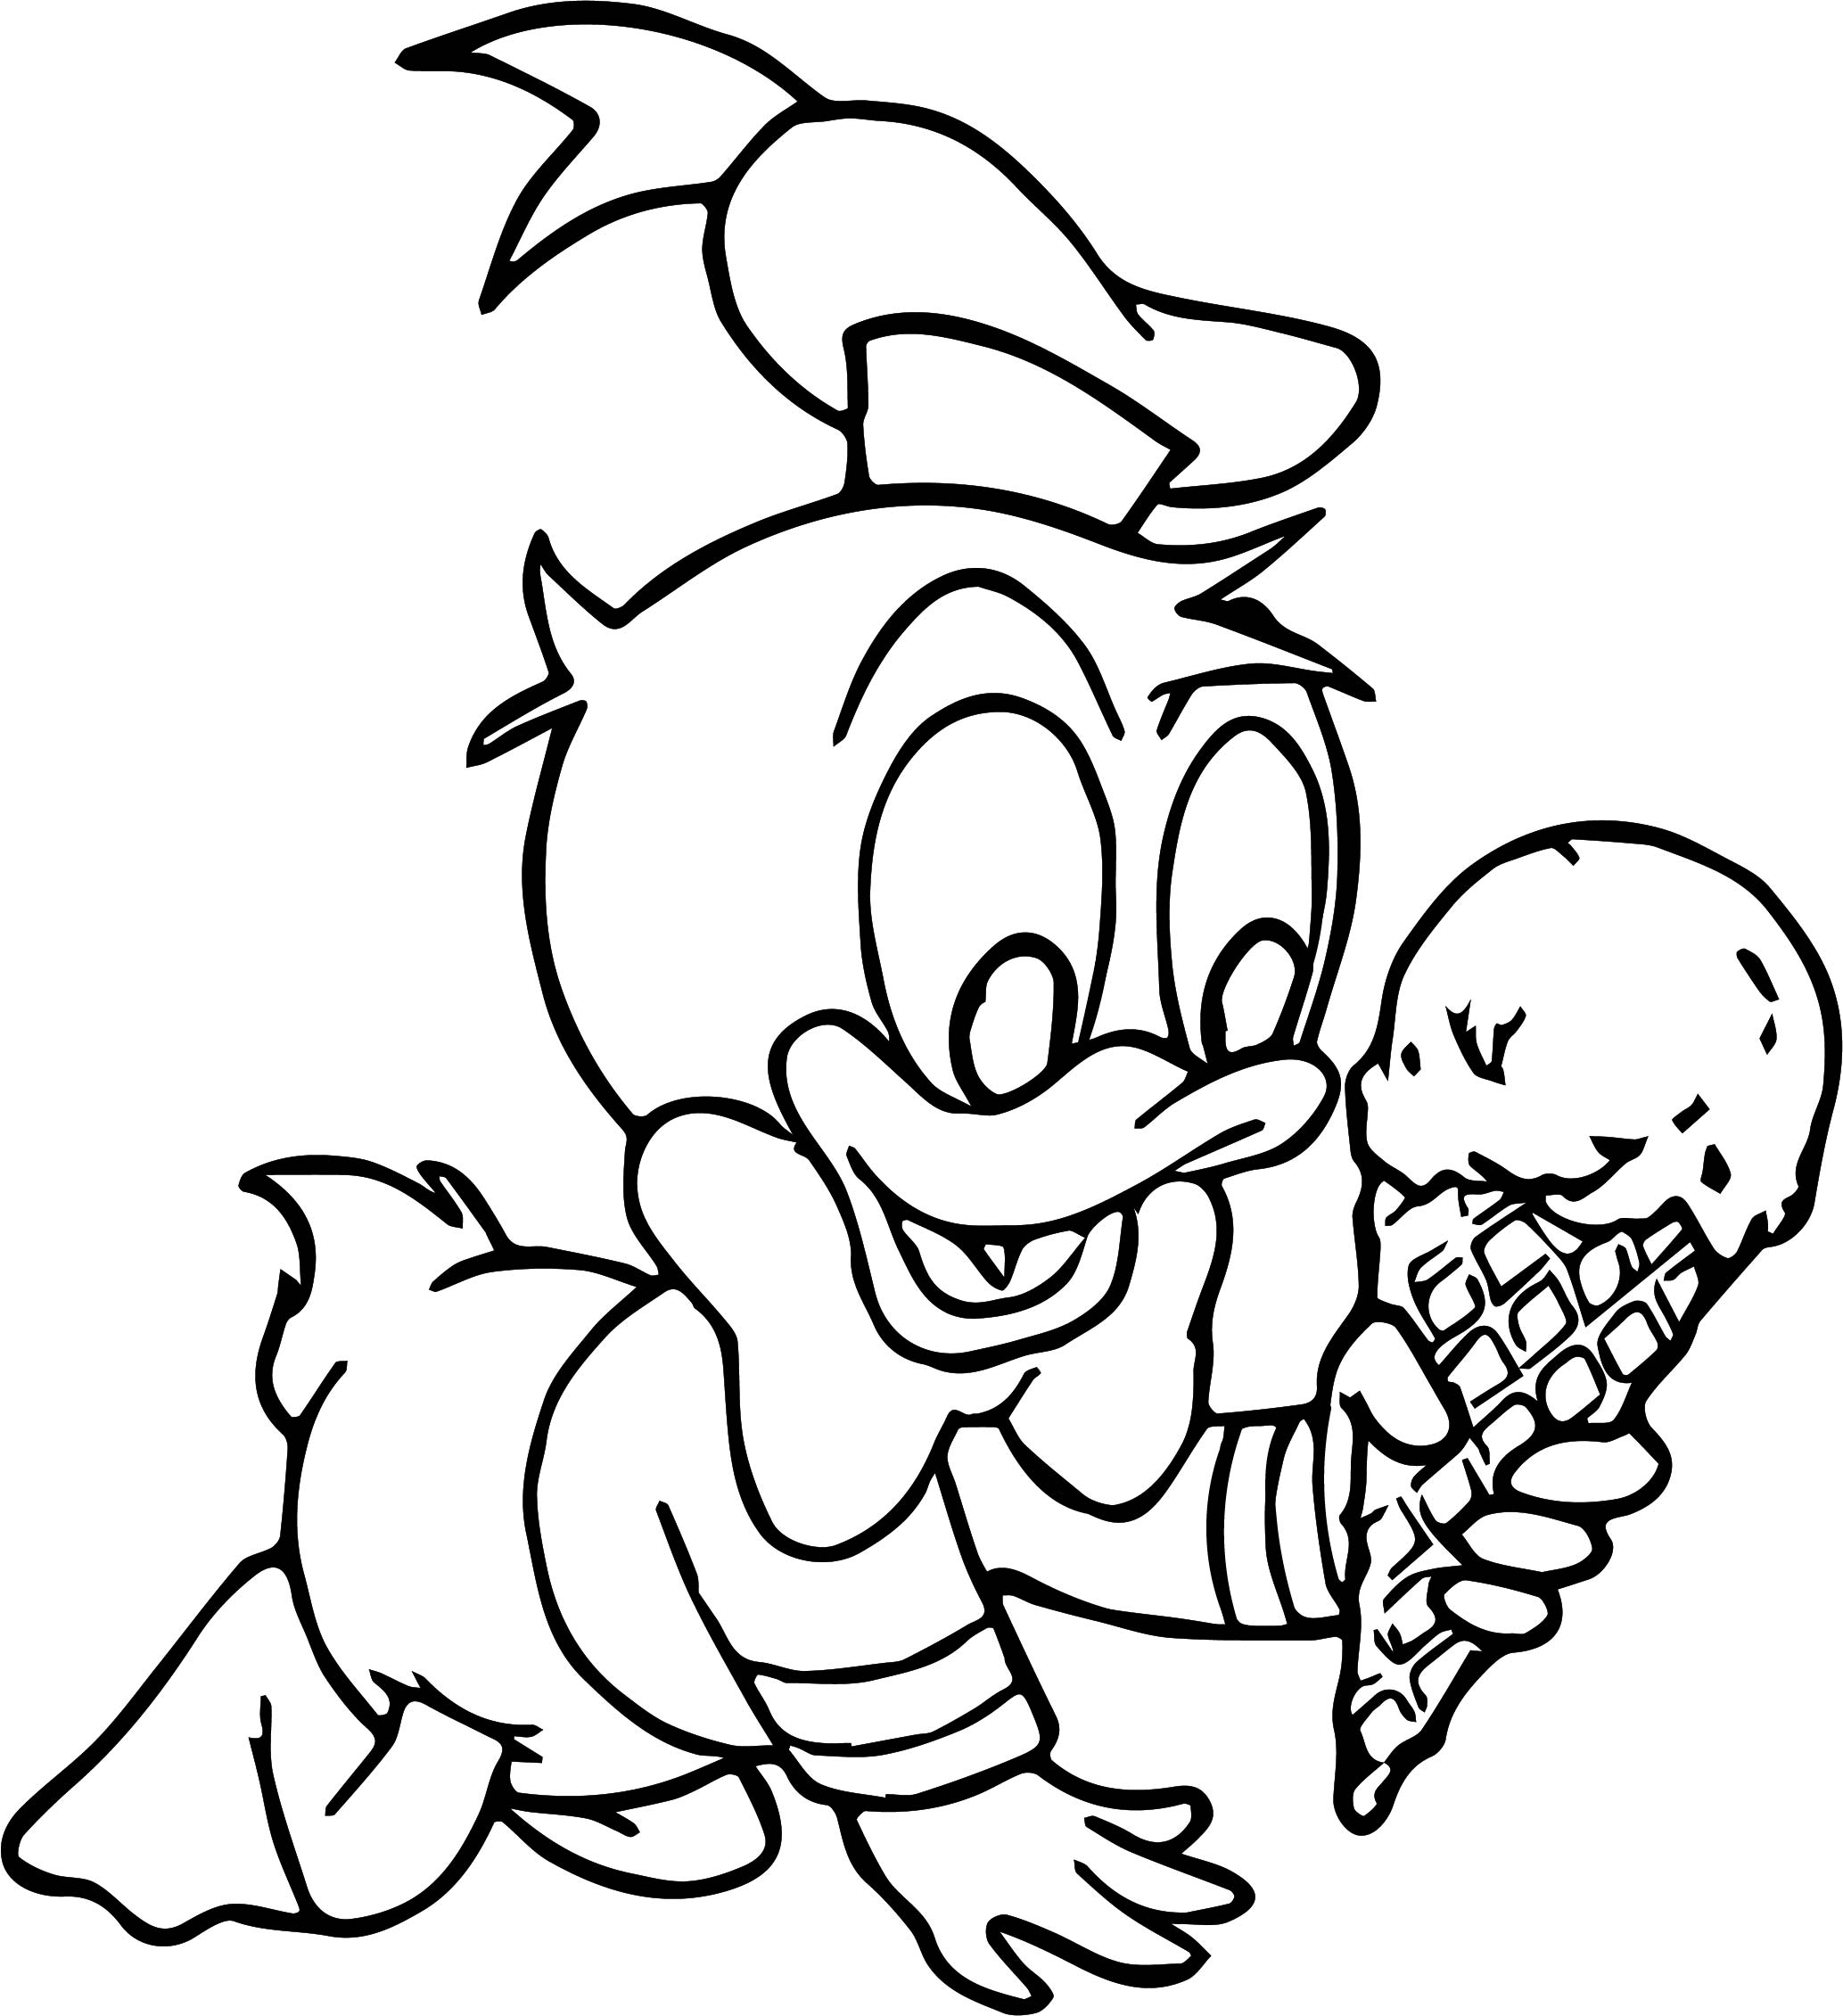 Baby Donald Duck Ice Cream Coloring Page | Wecoloringpage